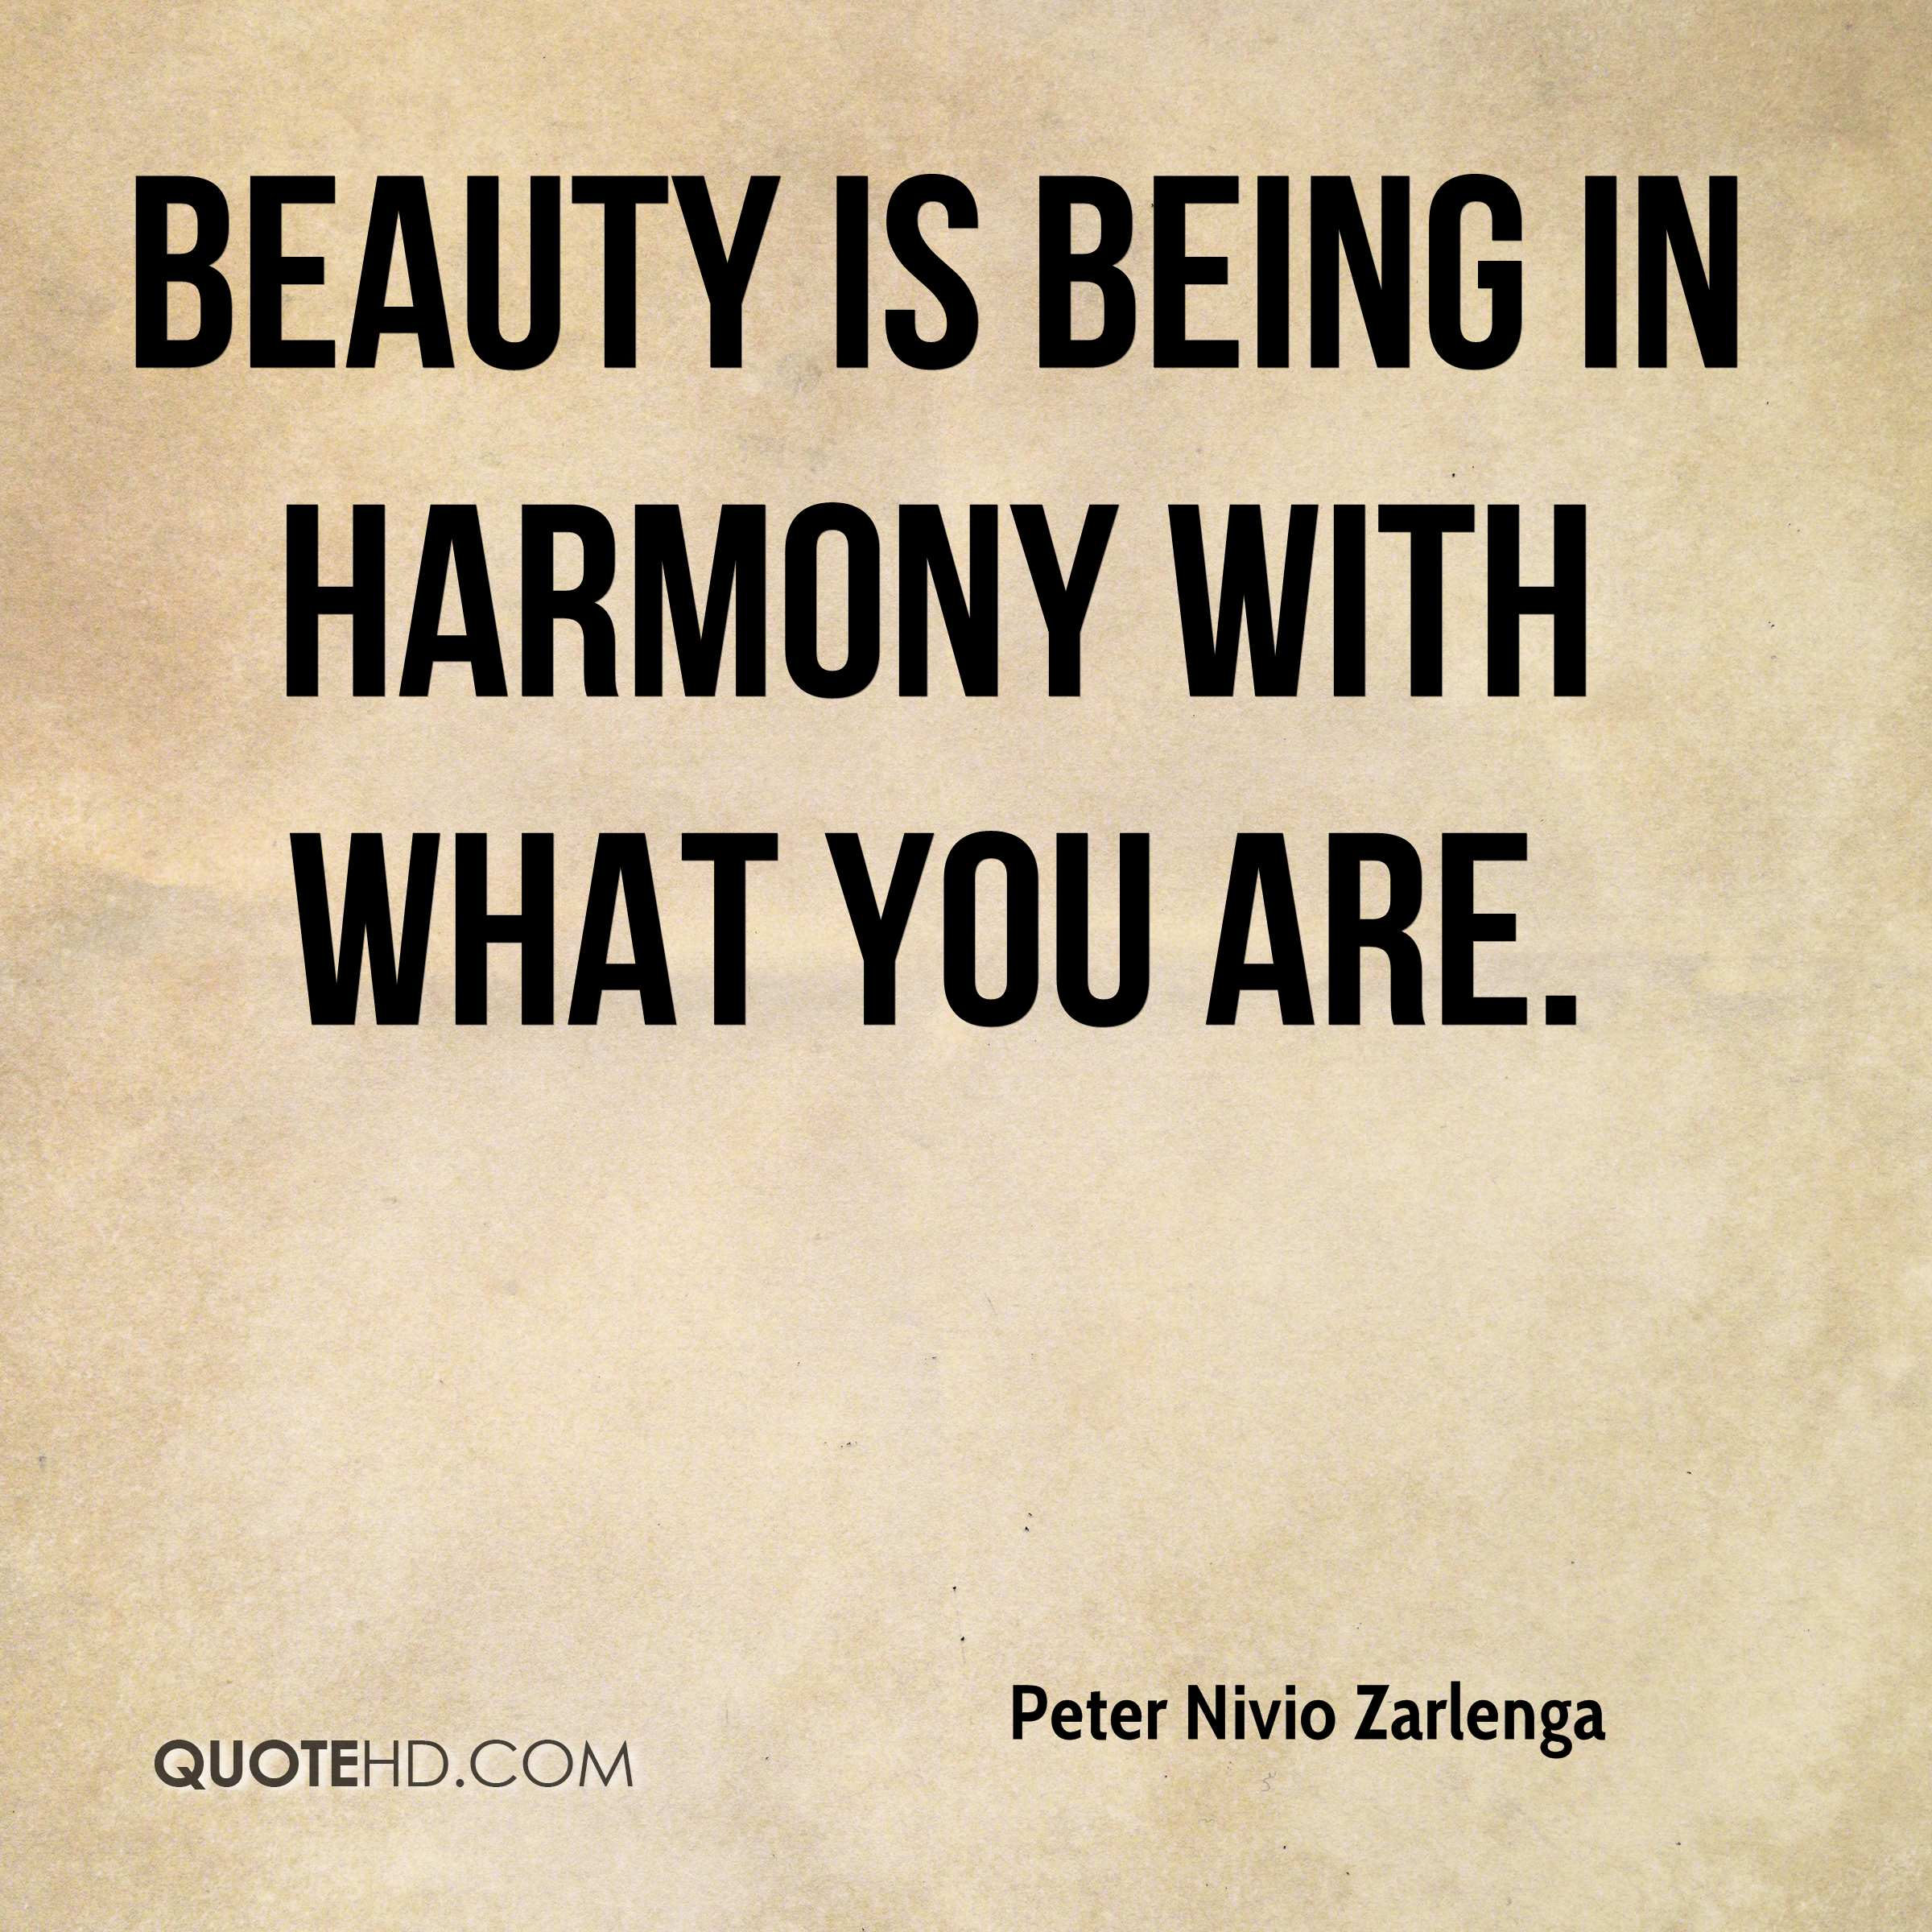 Beauty is being in harmony with what you are.